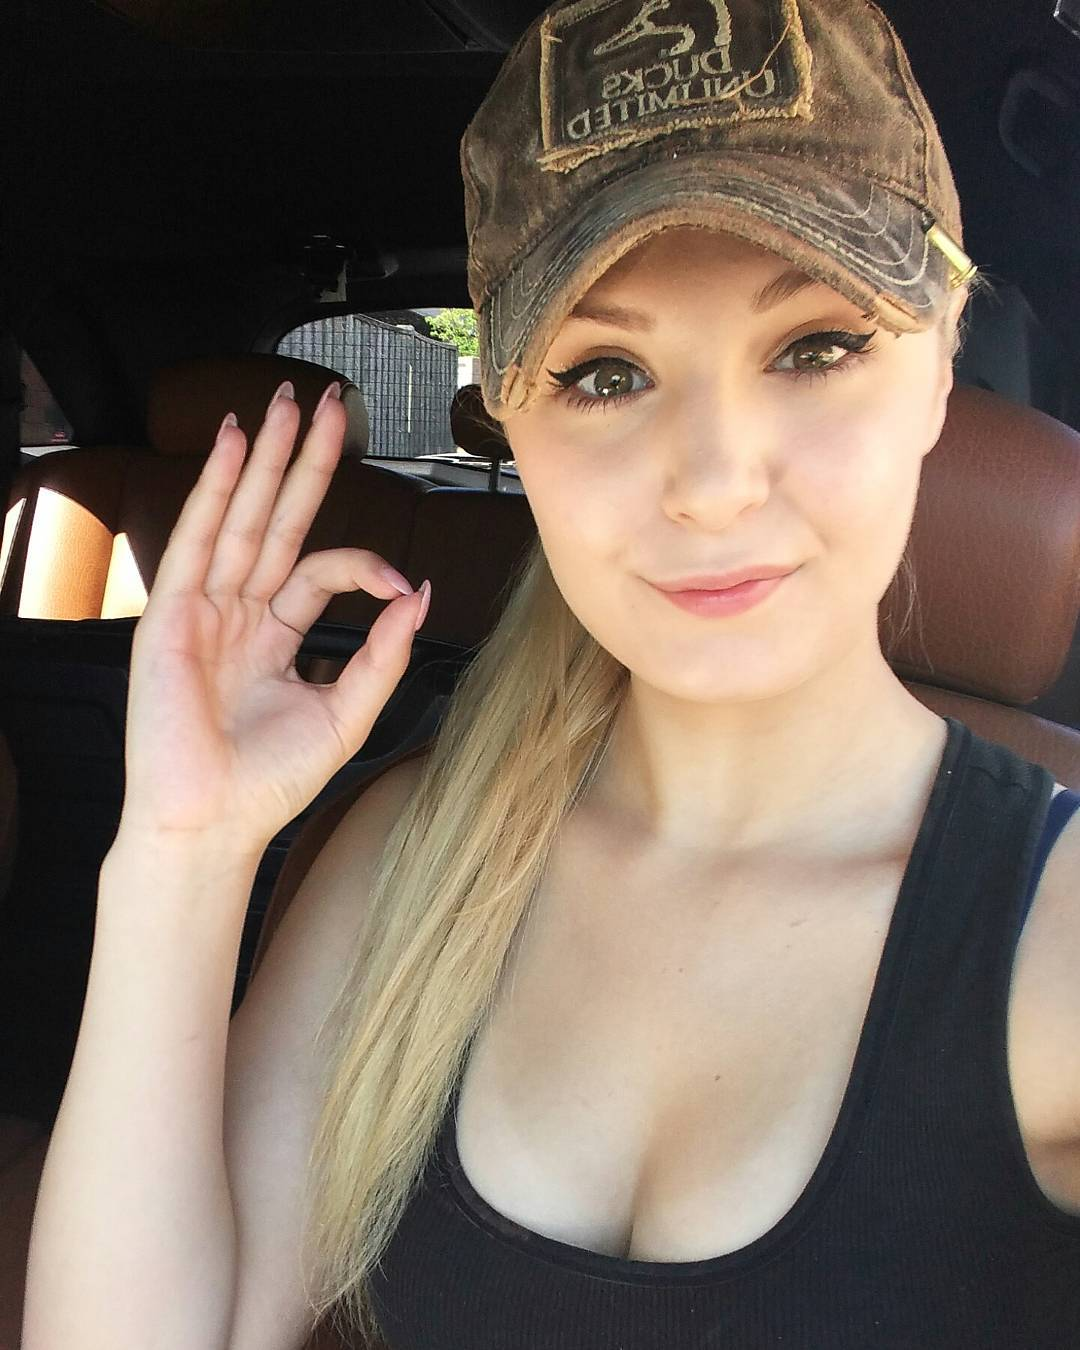 49 Hot Pictures Of Lauren Southern Which Will Make Your Day